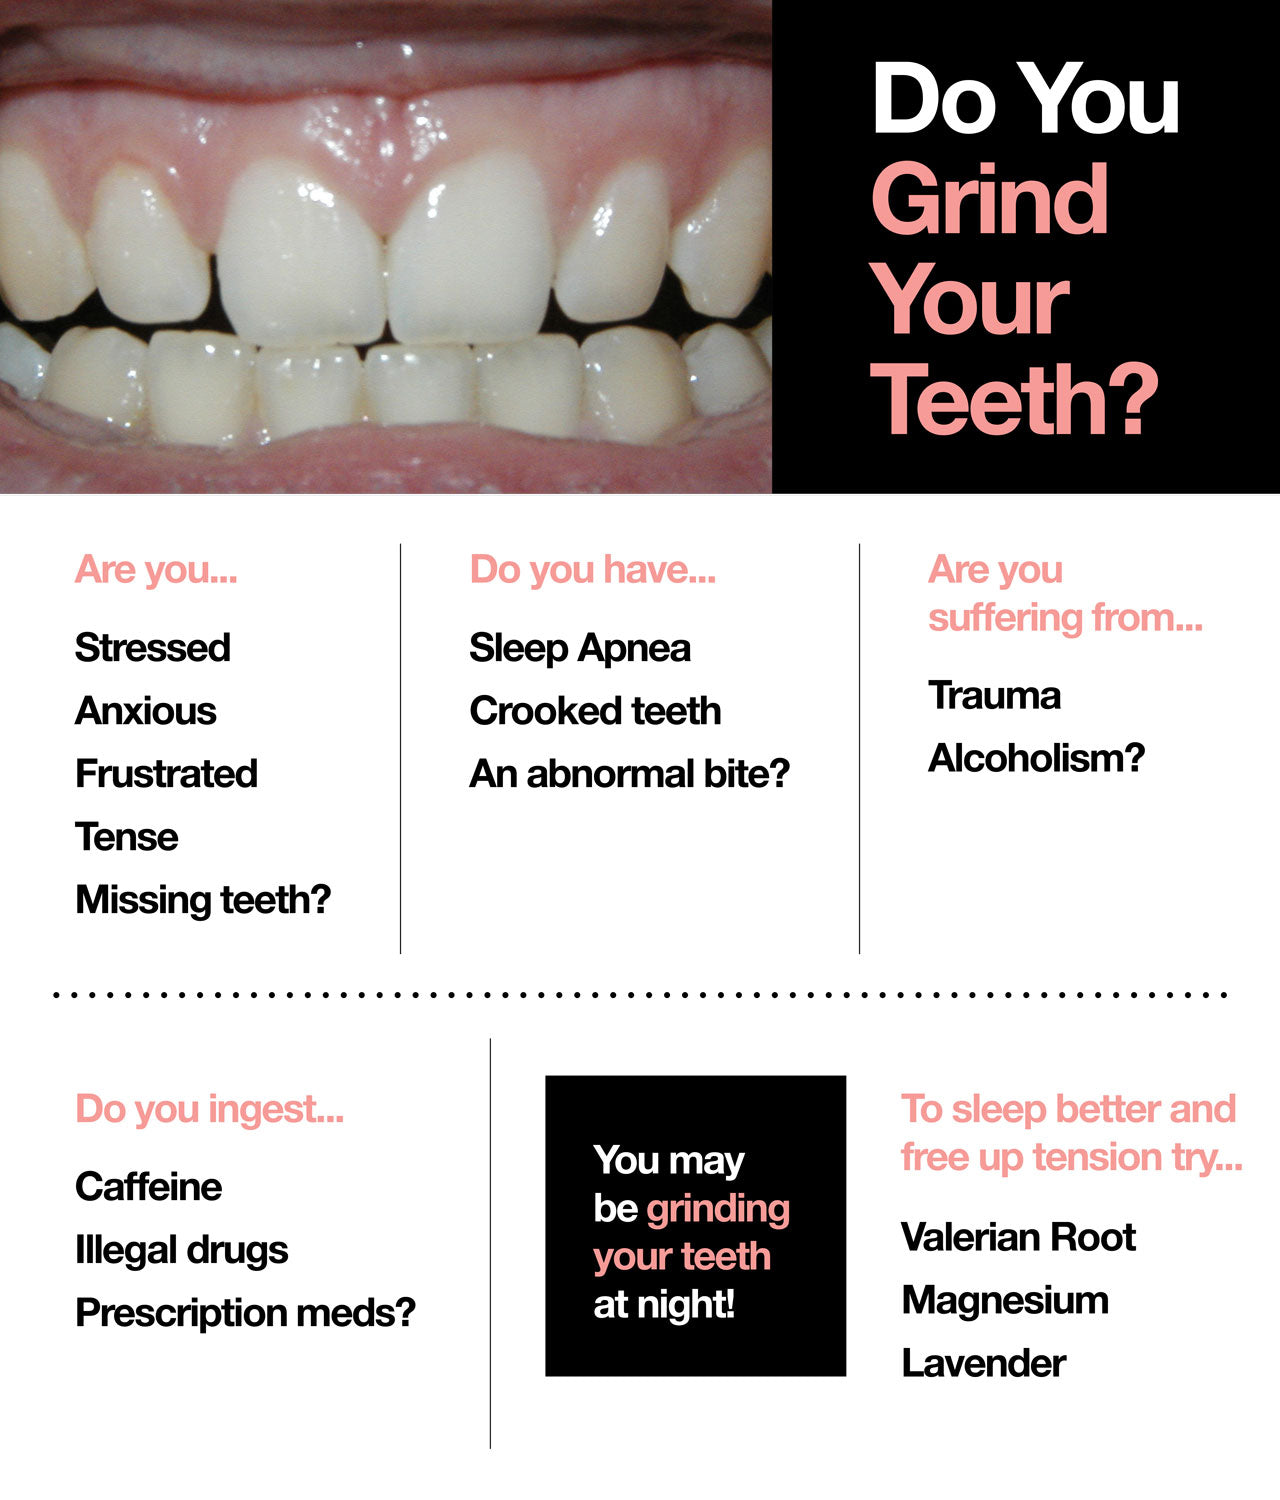 grinding your teeth